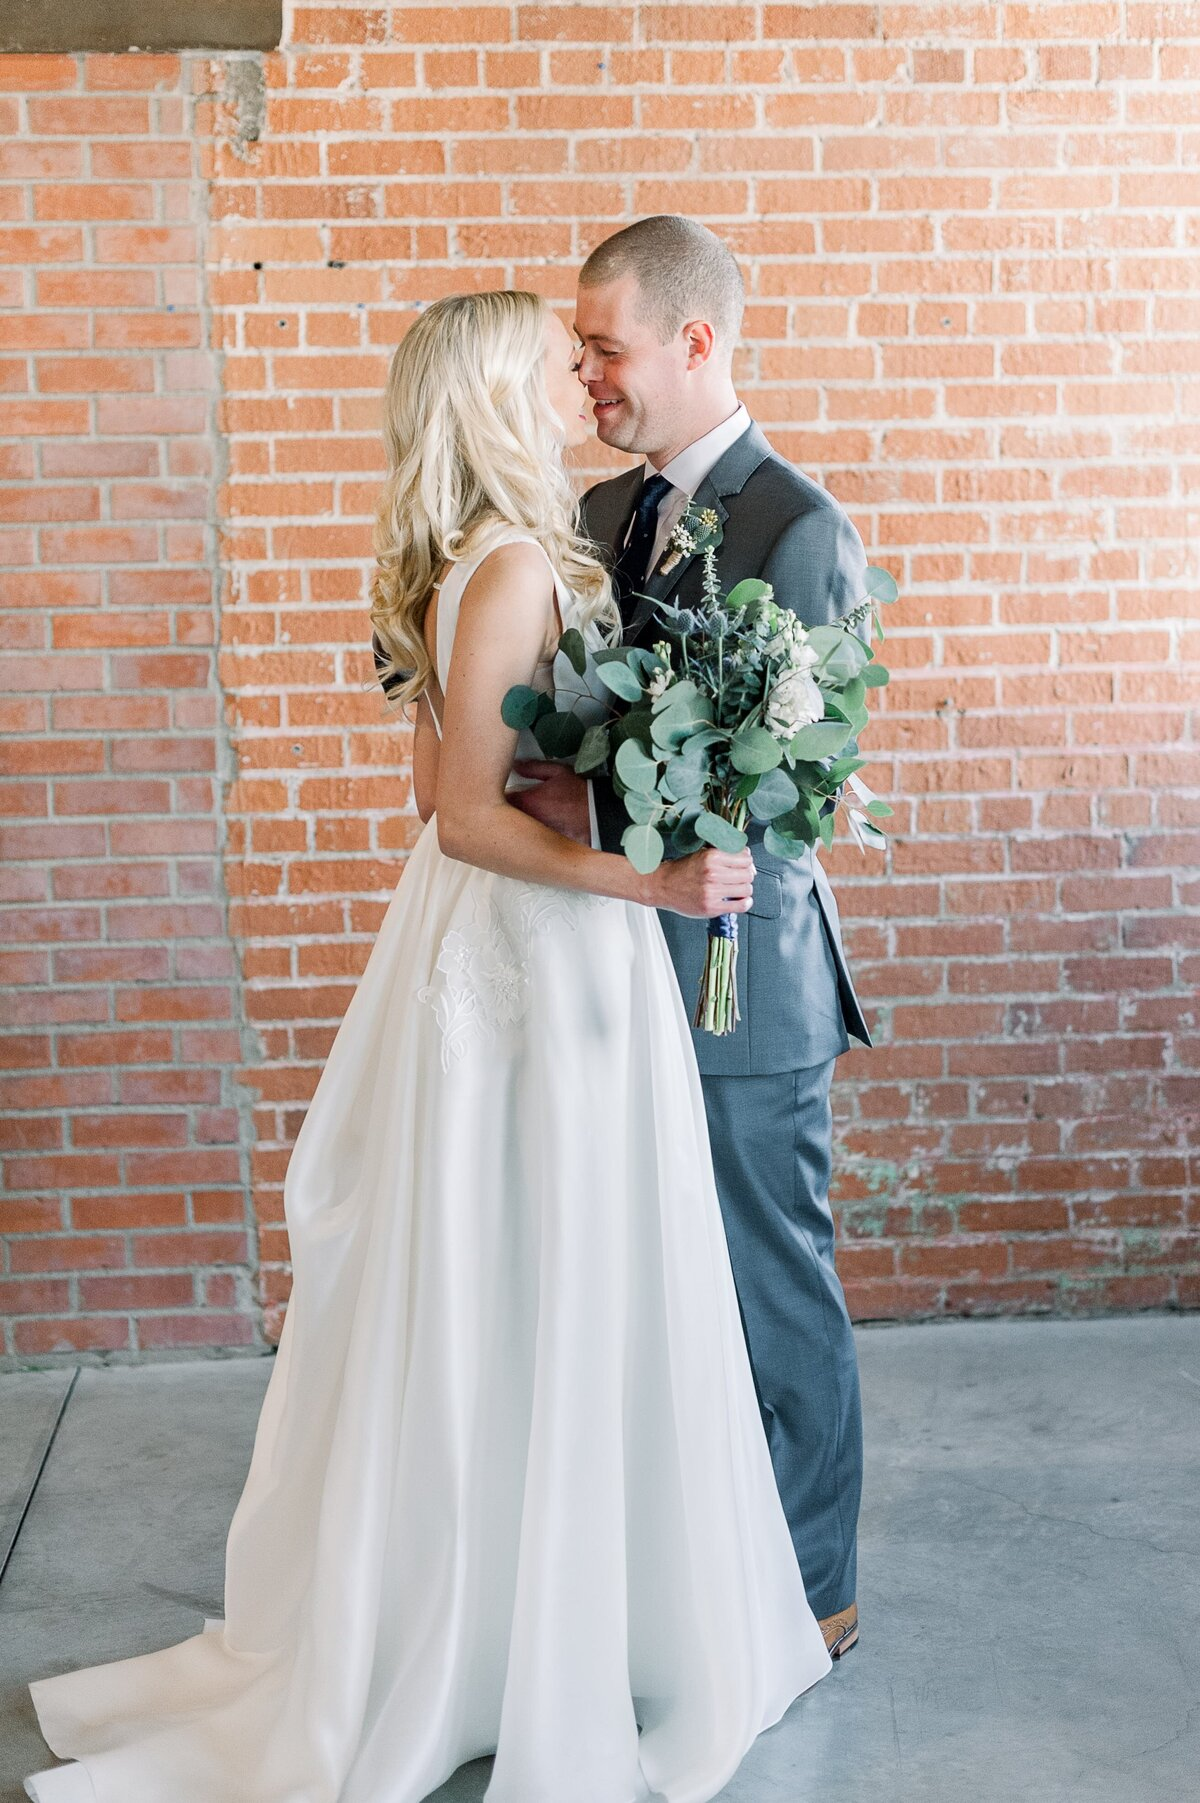 Warehouse-215-wedding-by-Leslie-Ann-Photography-00016